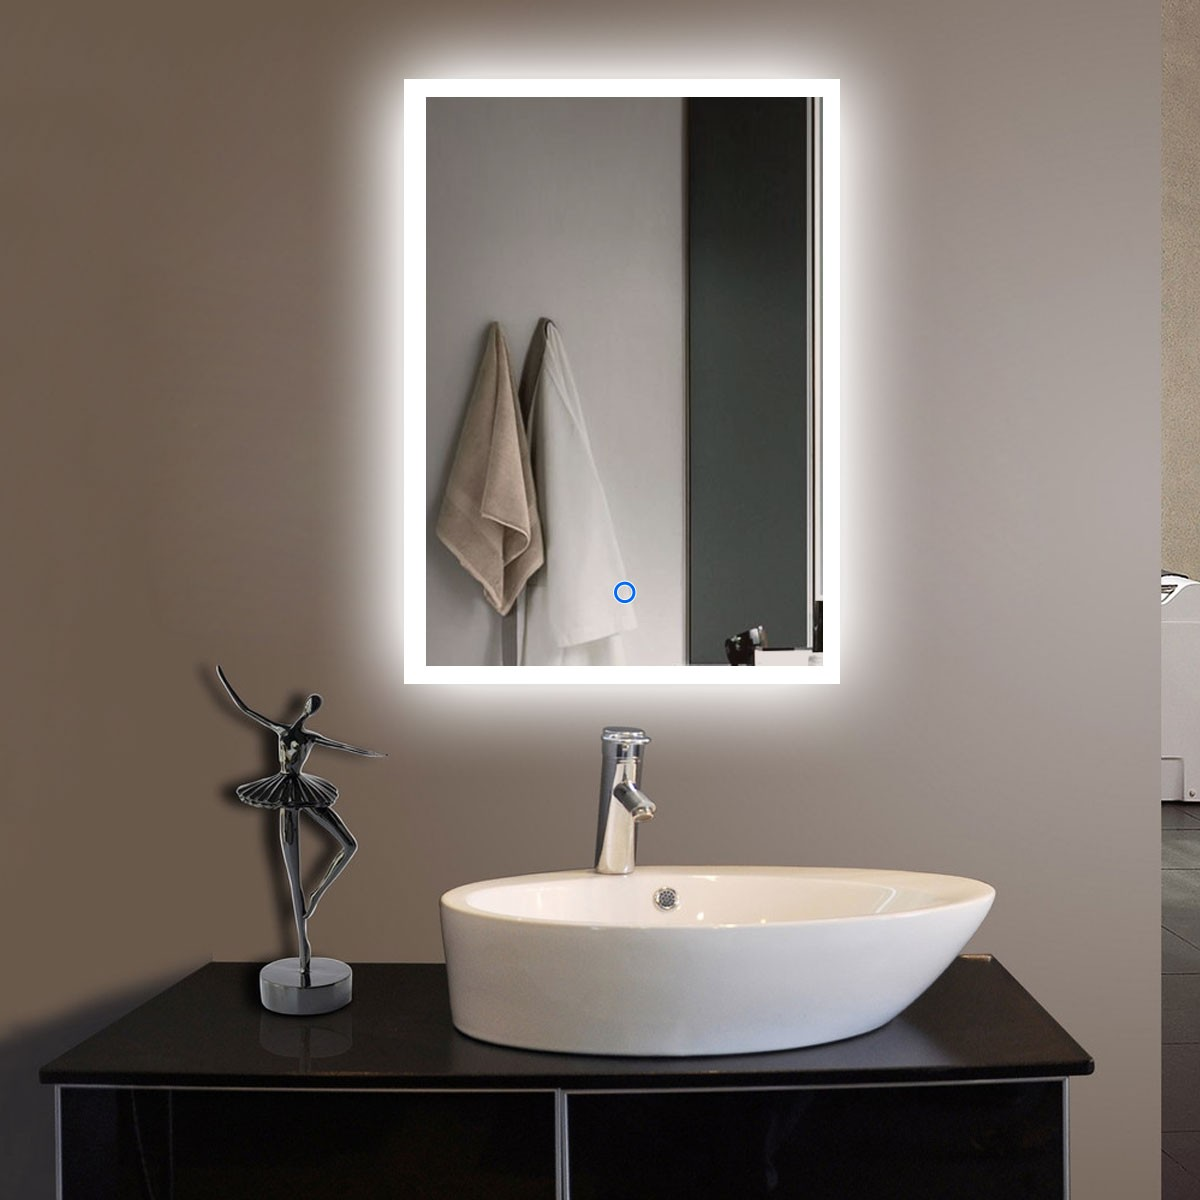 20 x 28 In Vertical LED Bathroom Mirror with Touch Button (DK-OD-N031-H)